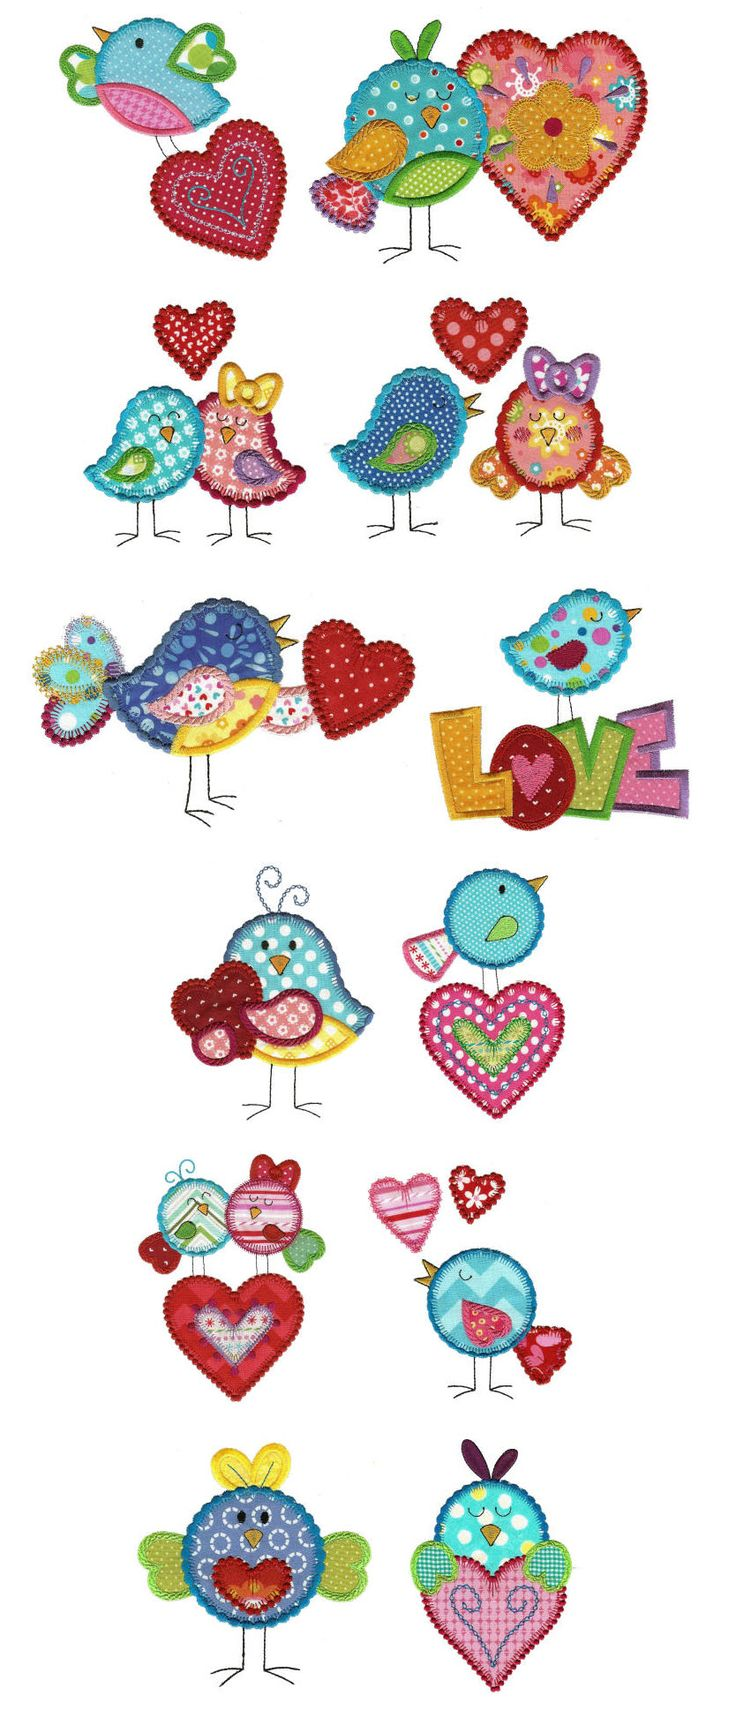 Embroidery Designs | Applique Machine Embroidery Designs | Love Birds Applique  Ideas for gelli papers